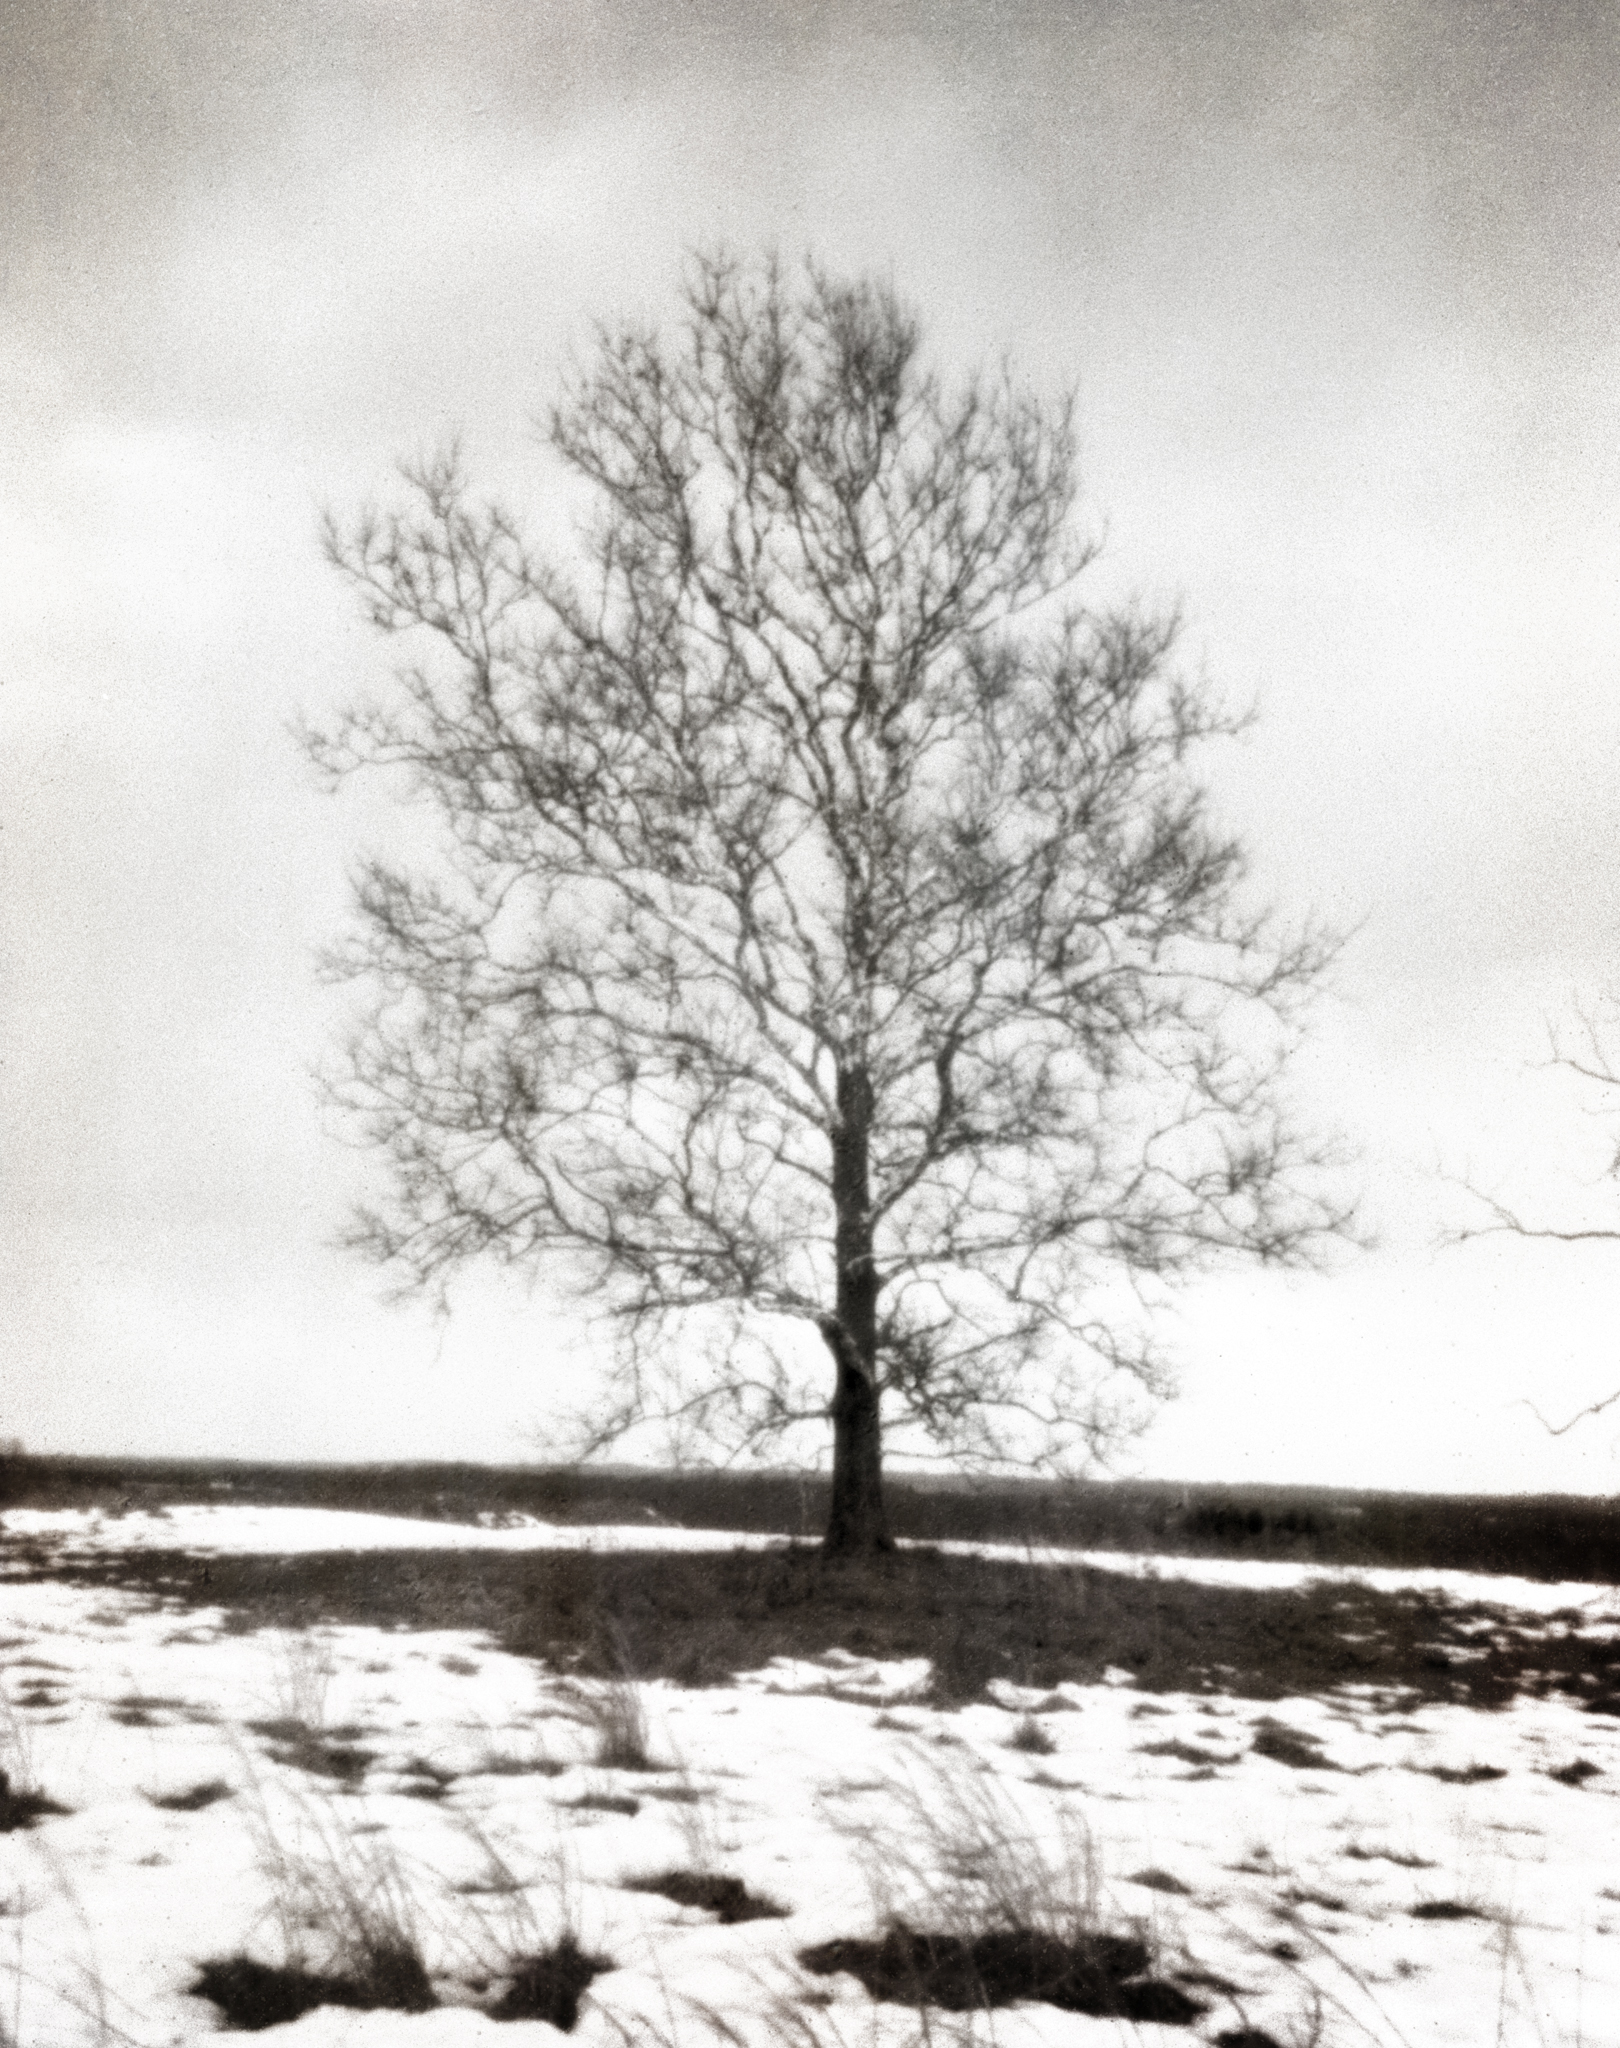 4x5_for_365_project_066_Valley_Forge_NHS_tree2.jpg